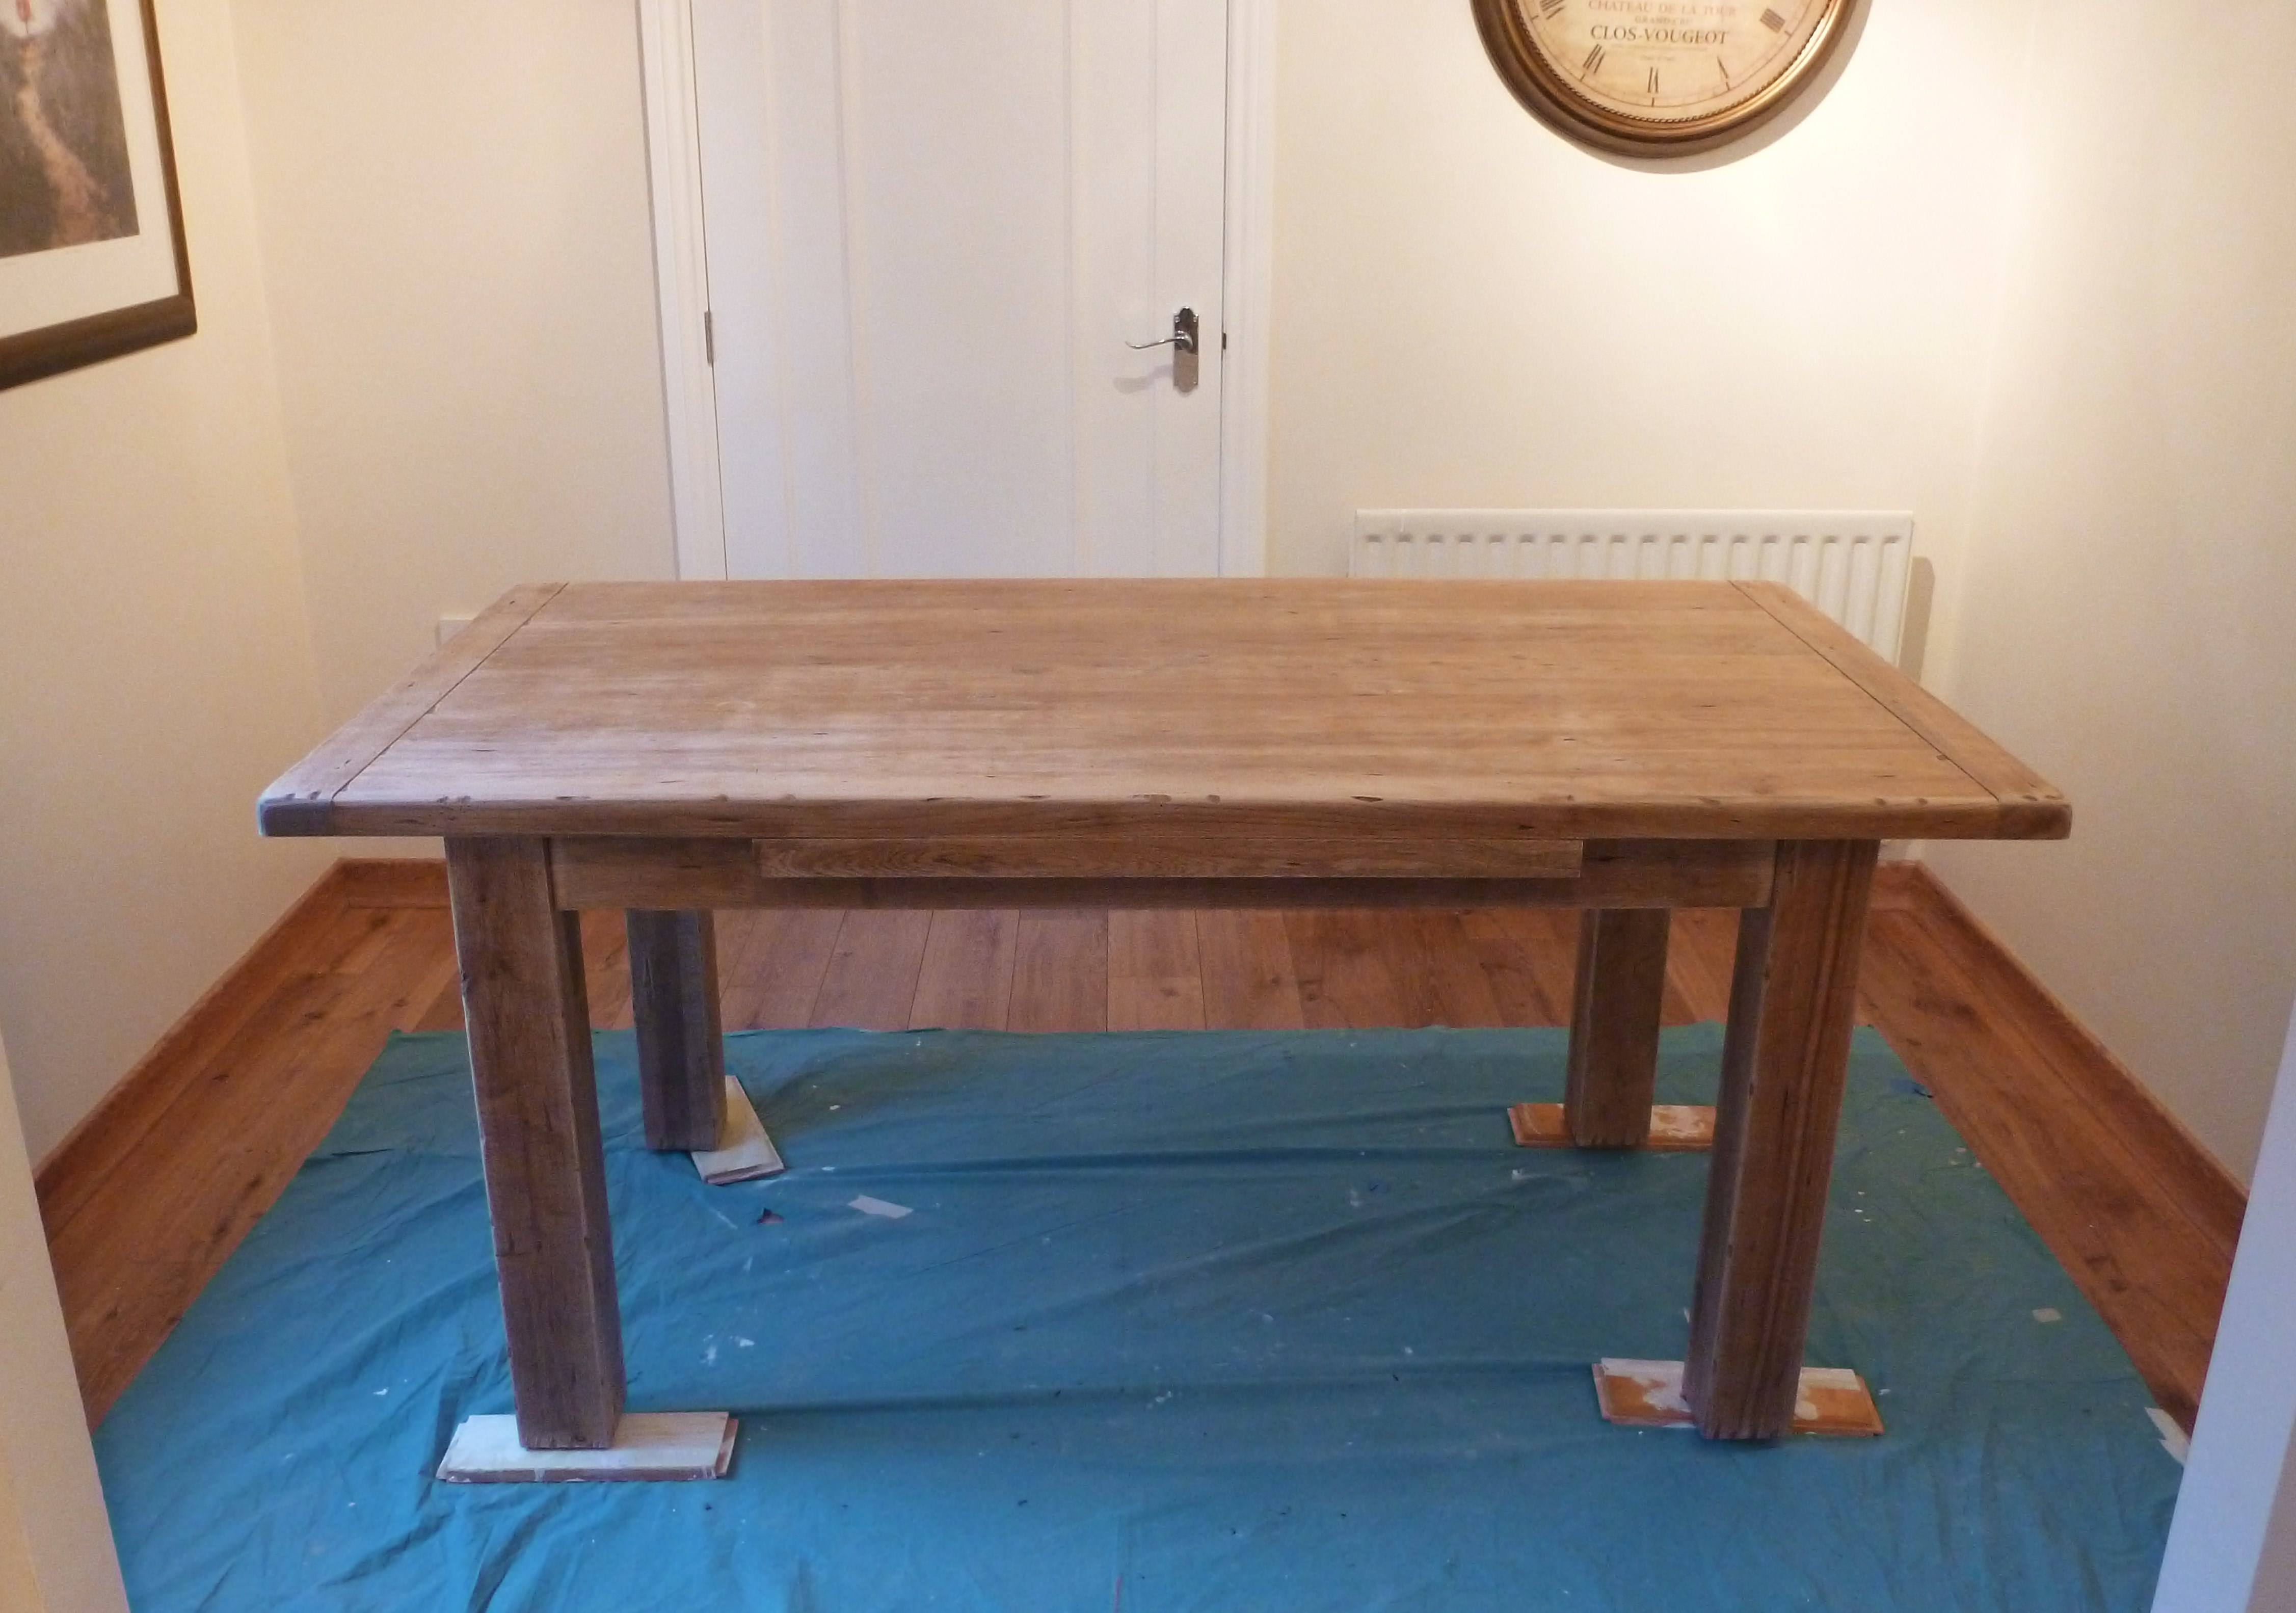 The Table Before It Was Painted